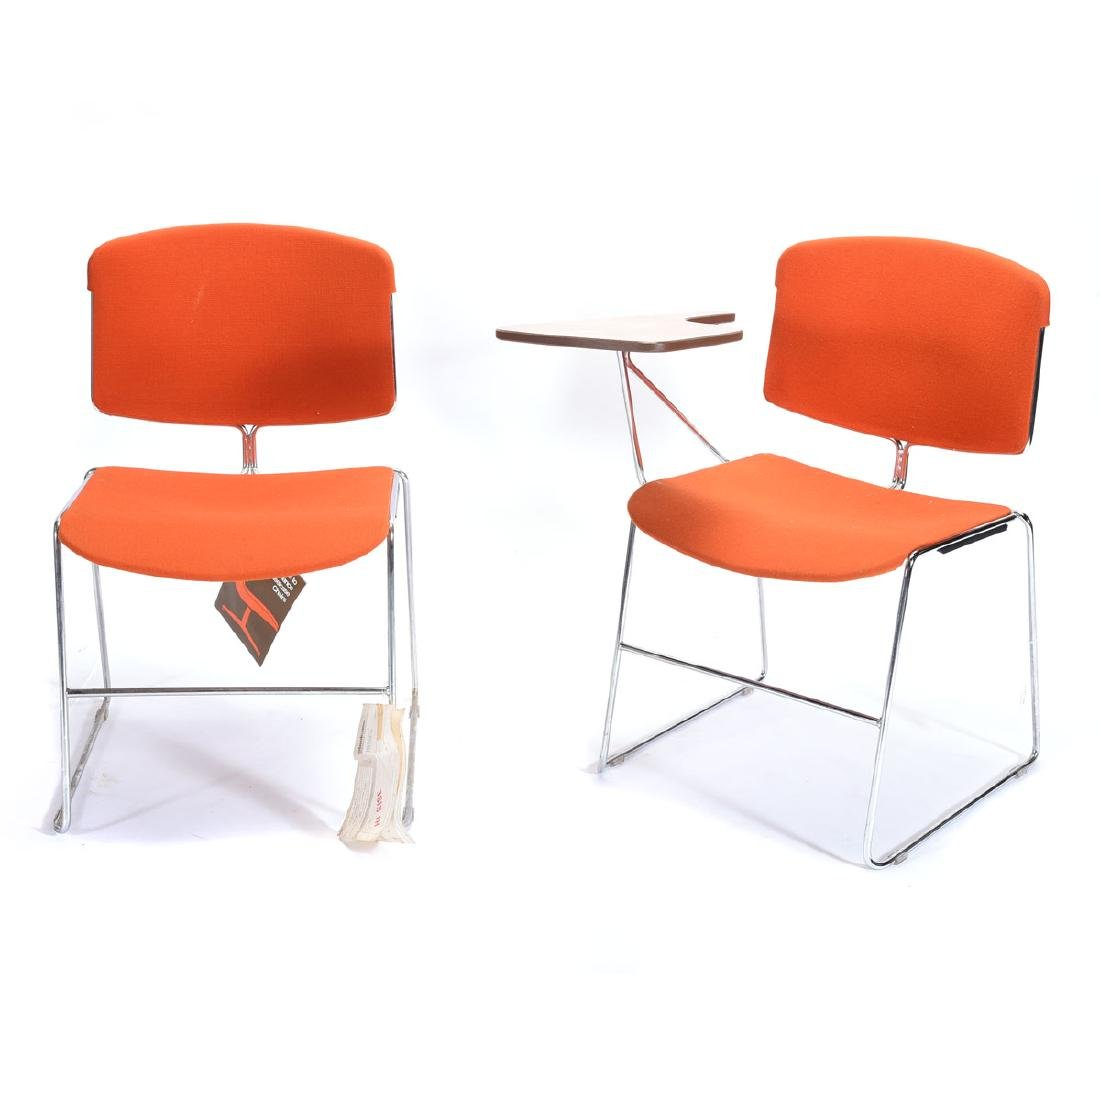 Six Mid Century Modern Steel Case Stacking Chairs.